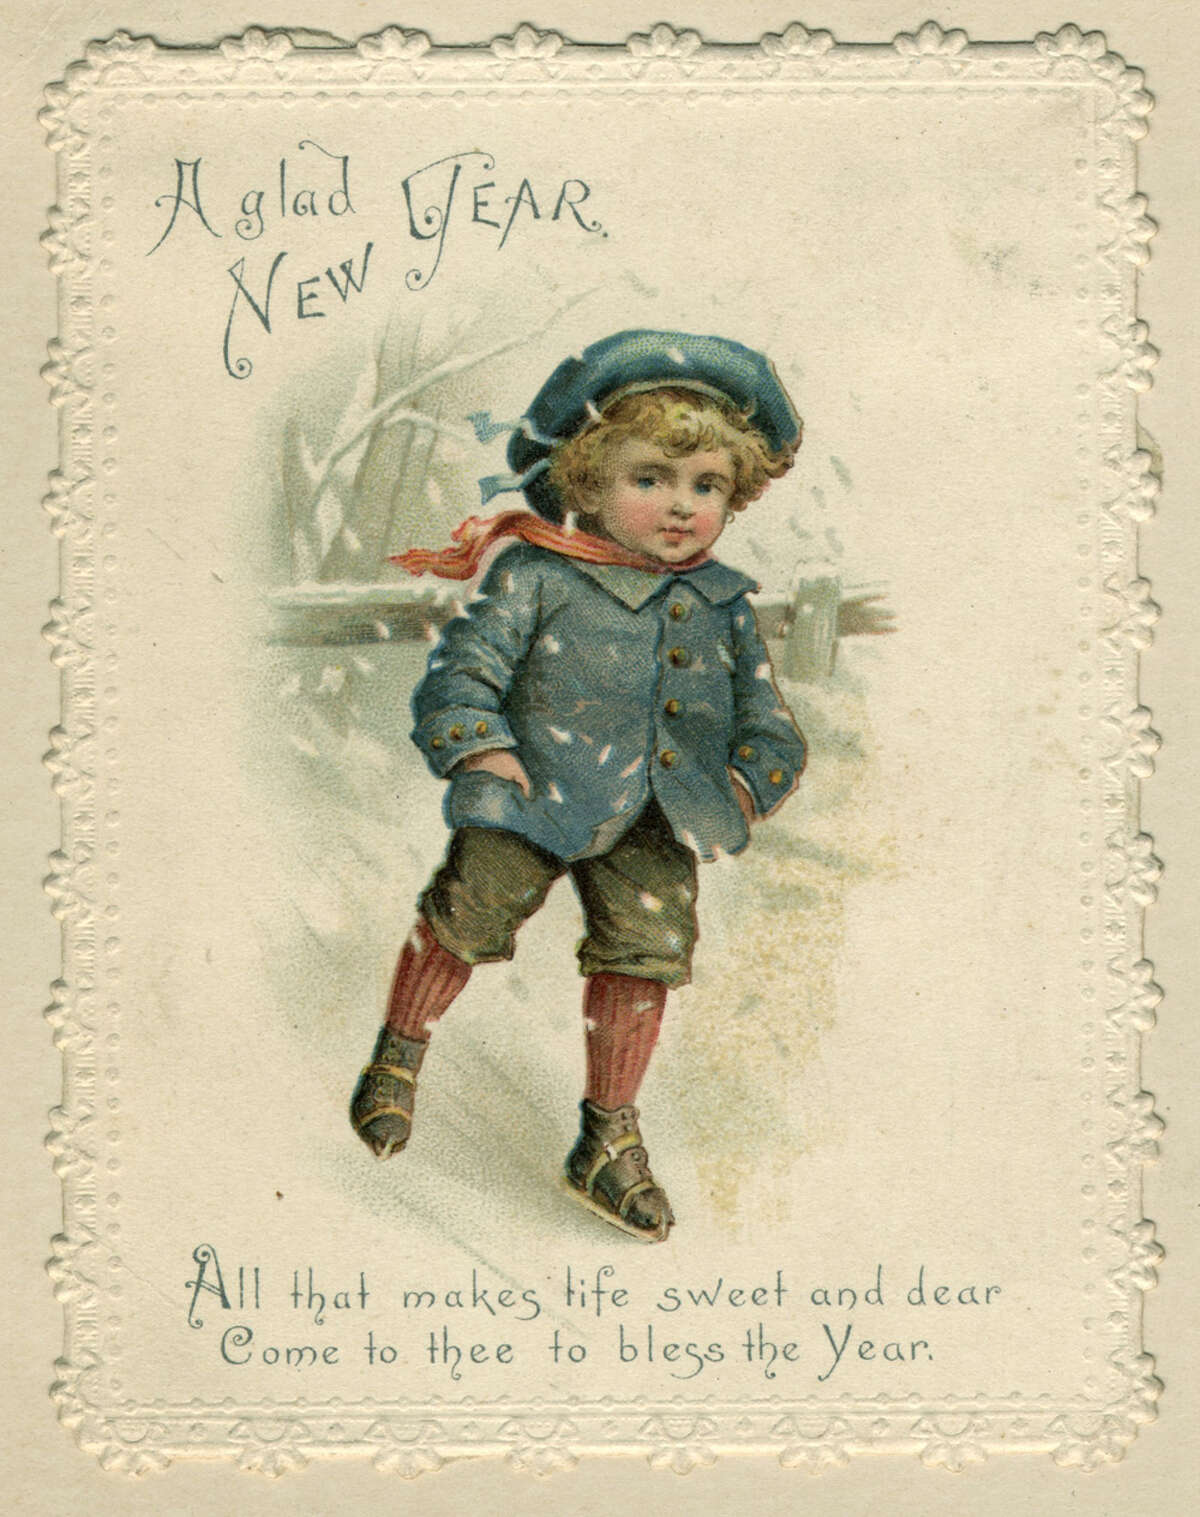 A young boy skates over ice on this sentimental Victorian New Year's card, circa 1871.